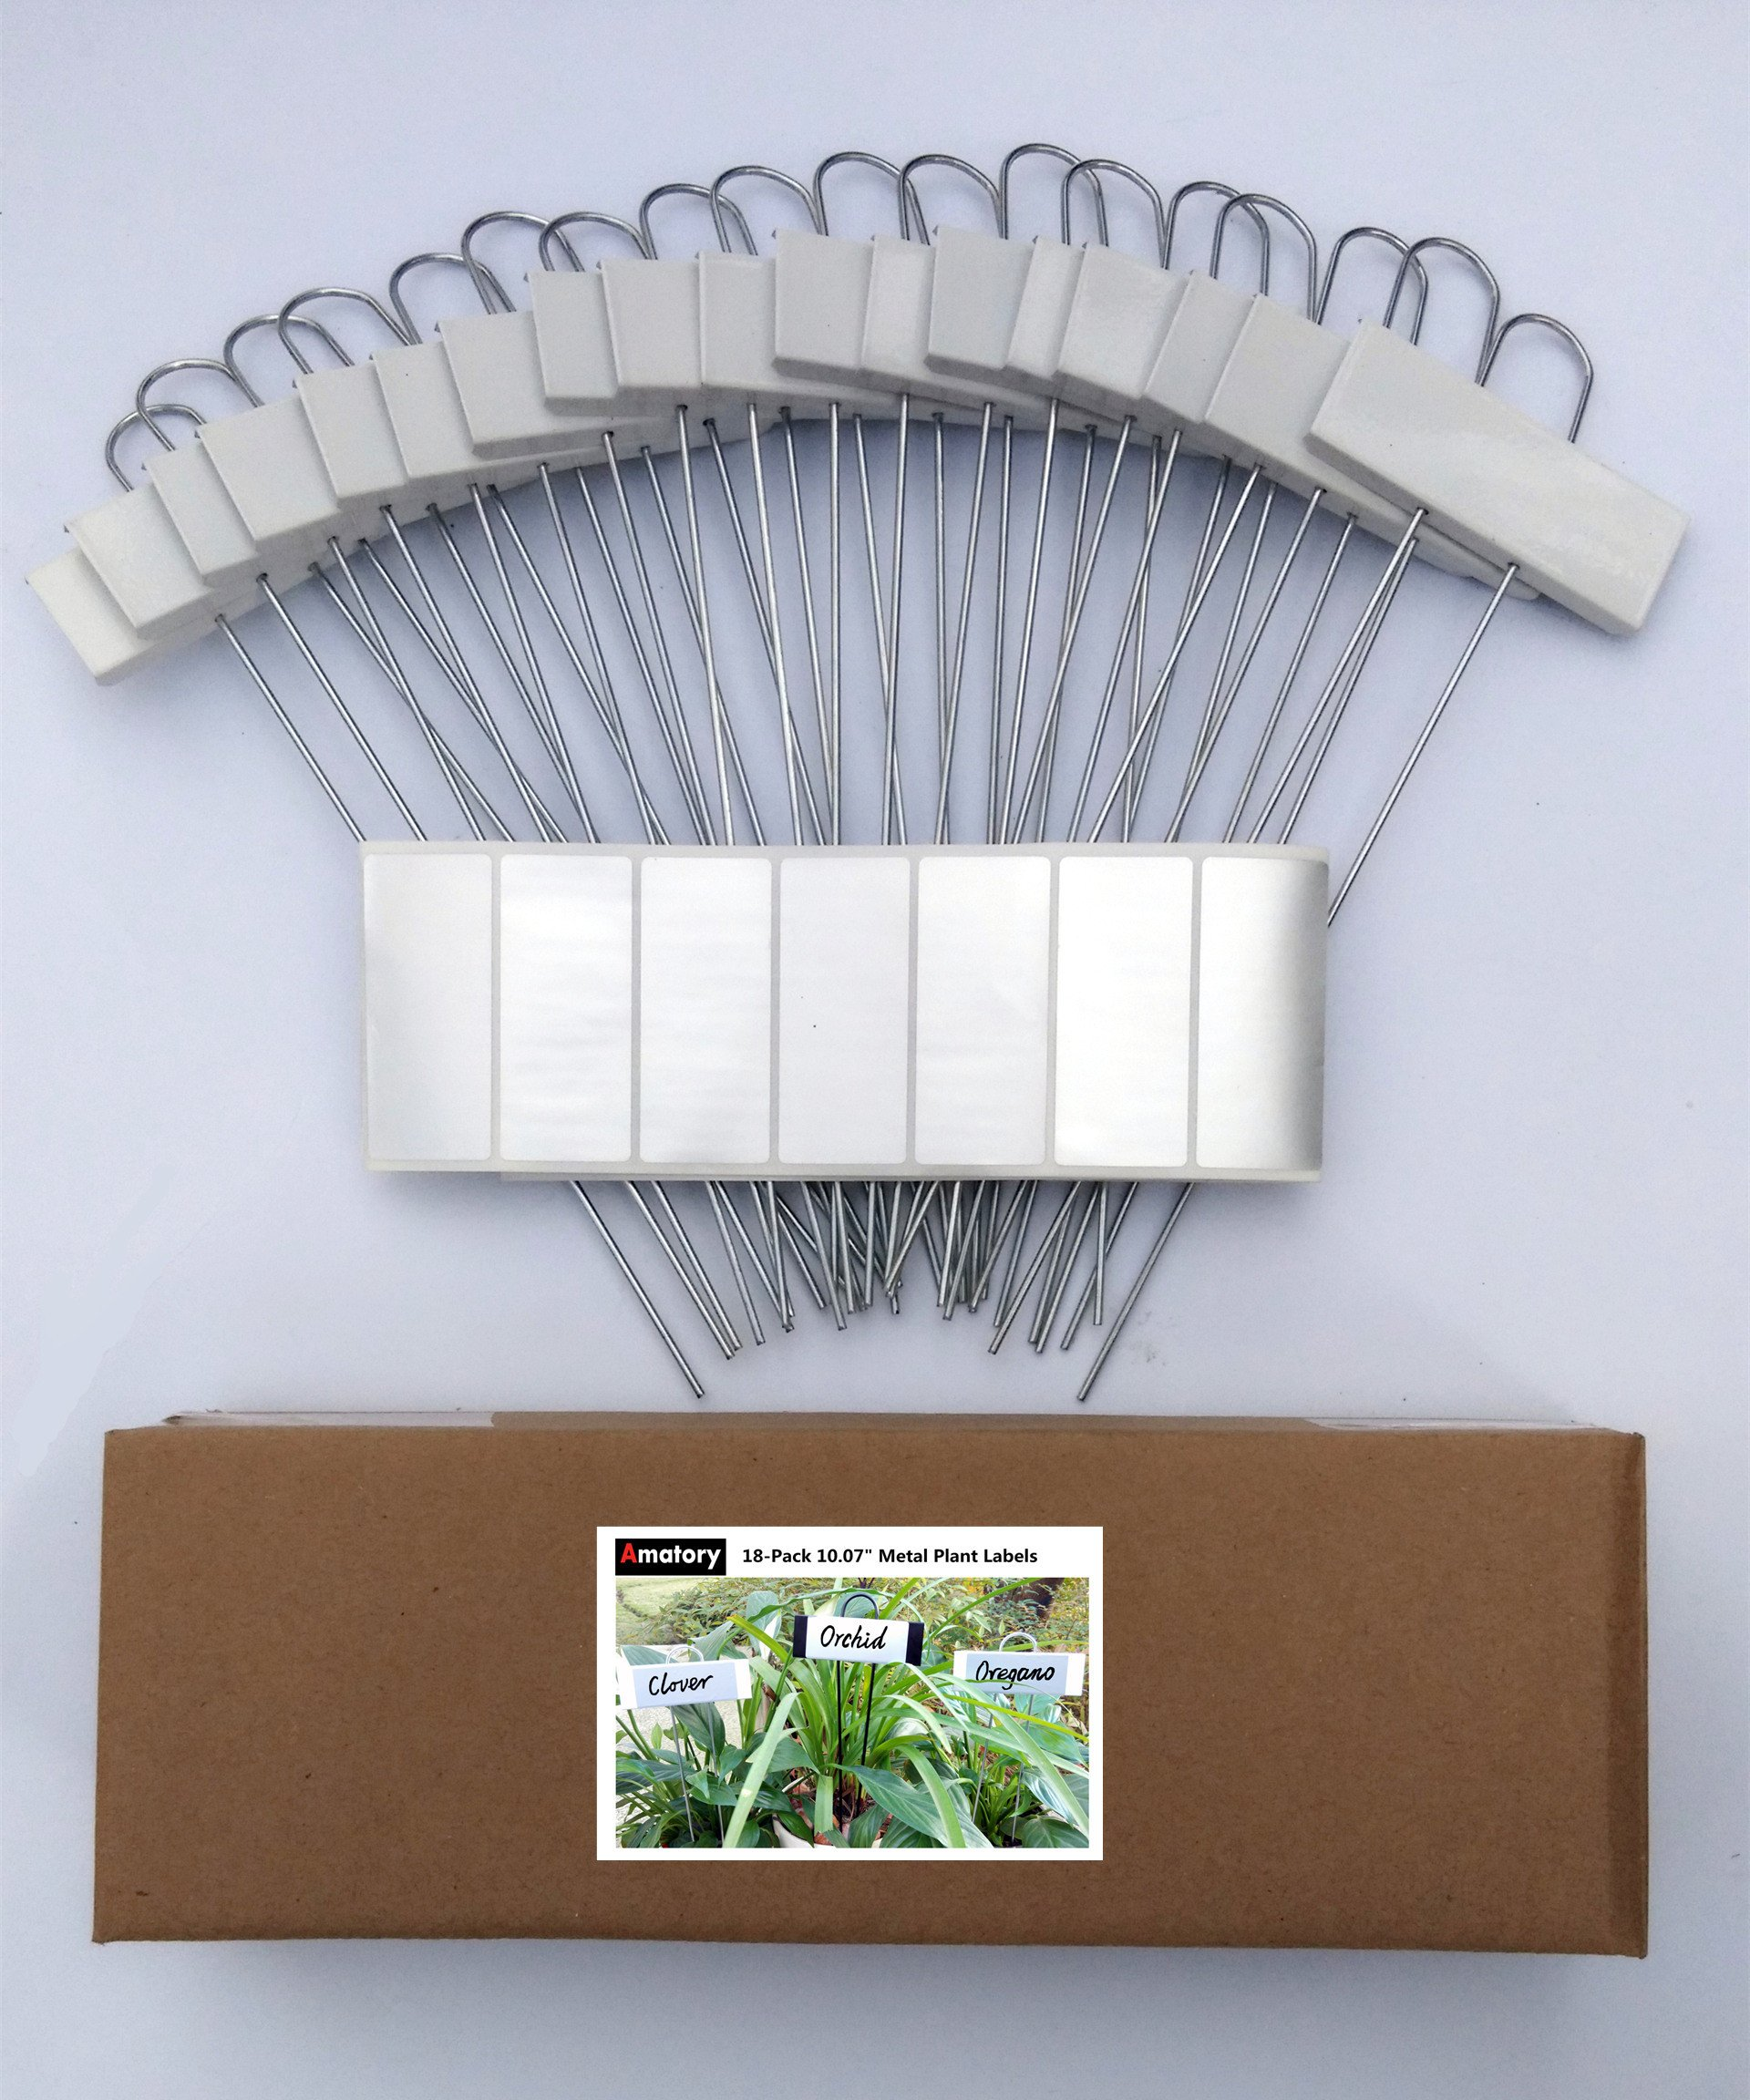 Metal Plant Labels Garden Markers Nursery Tags Reusable Planting Gardening Seedling Labels for Vegetable Herb Flower Greenhouse Set of 18,With 36 Pcs Self-adhesive Polyester Labels (White-10.7'') by Amatory